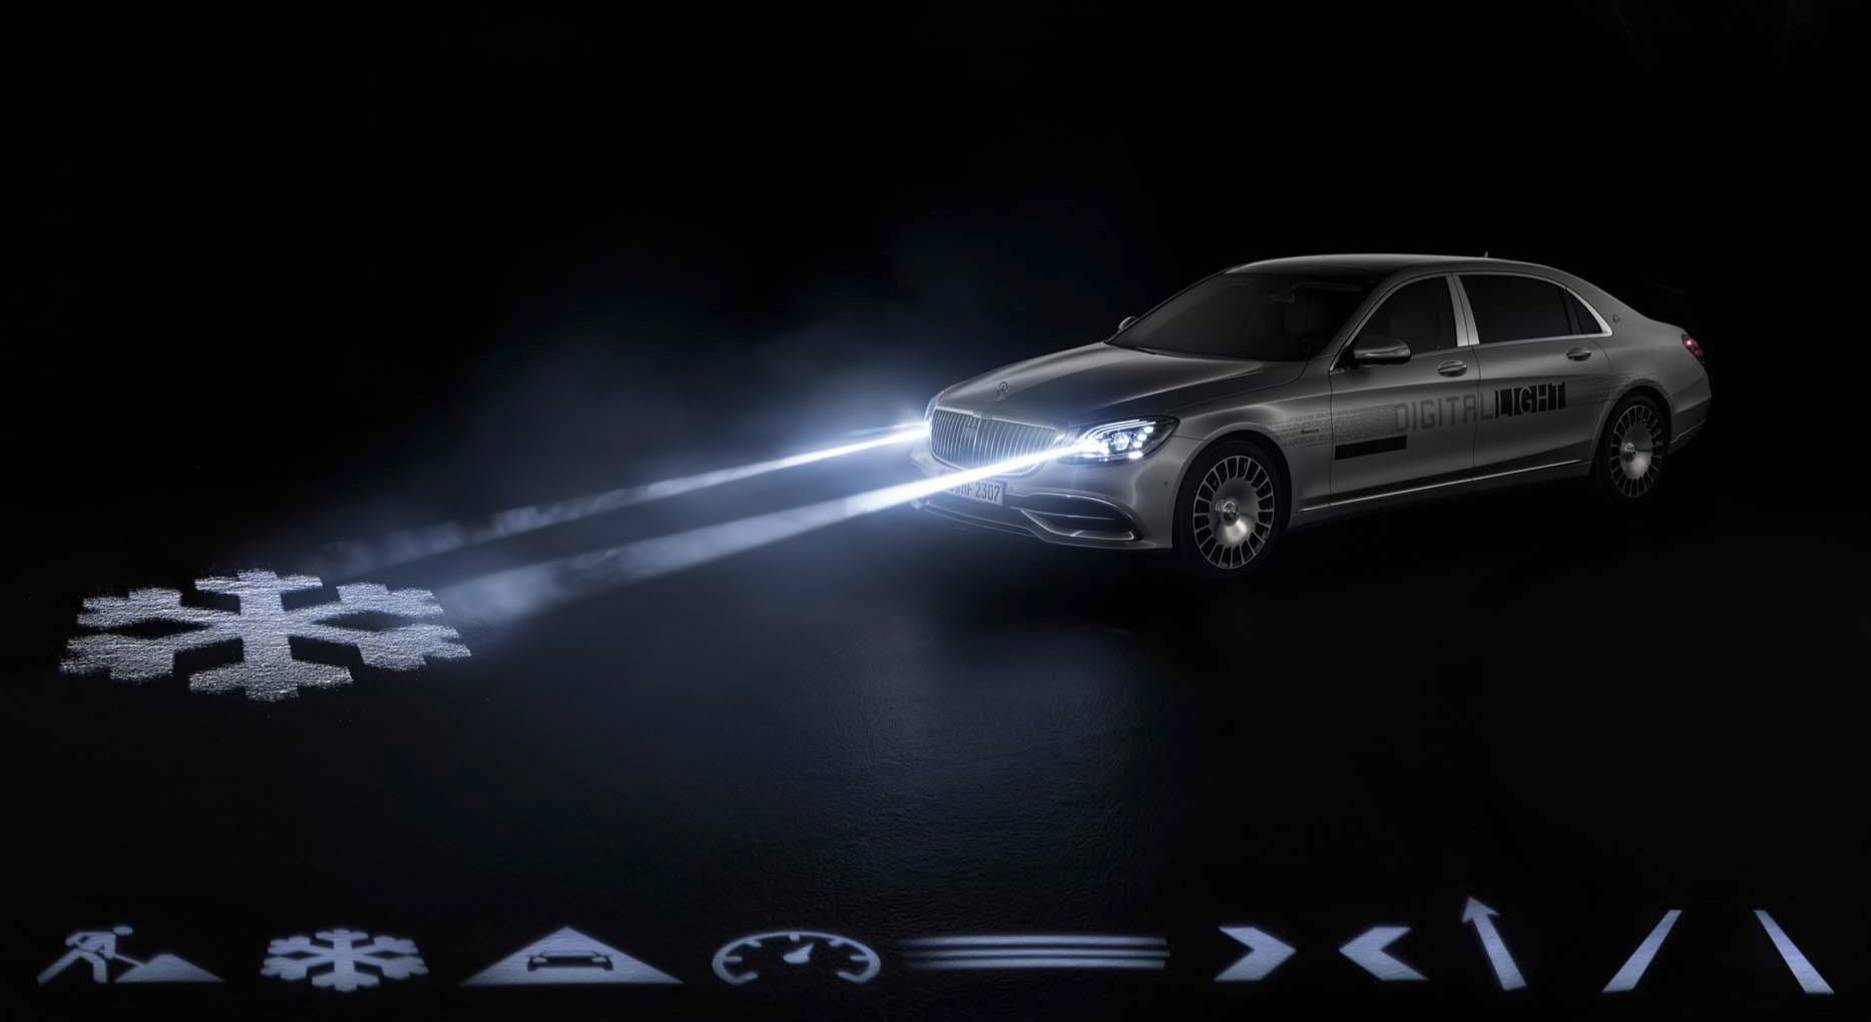 Most Expensive Mercedes Benz Model >> Mercedes Maybach will come with 2 megapixel smart headlights that can project warning symbols on ...